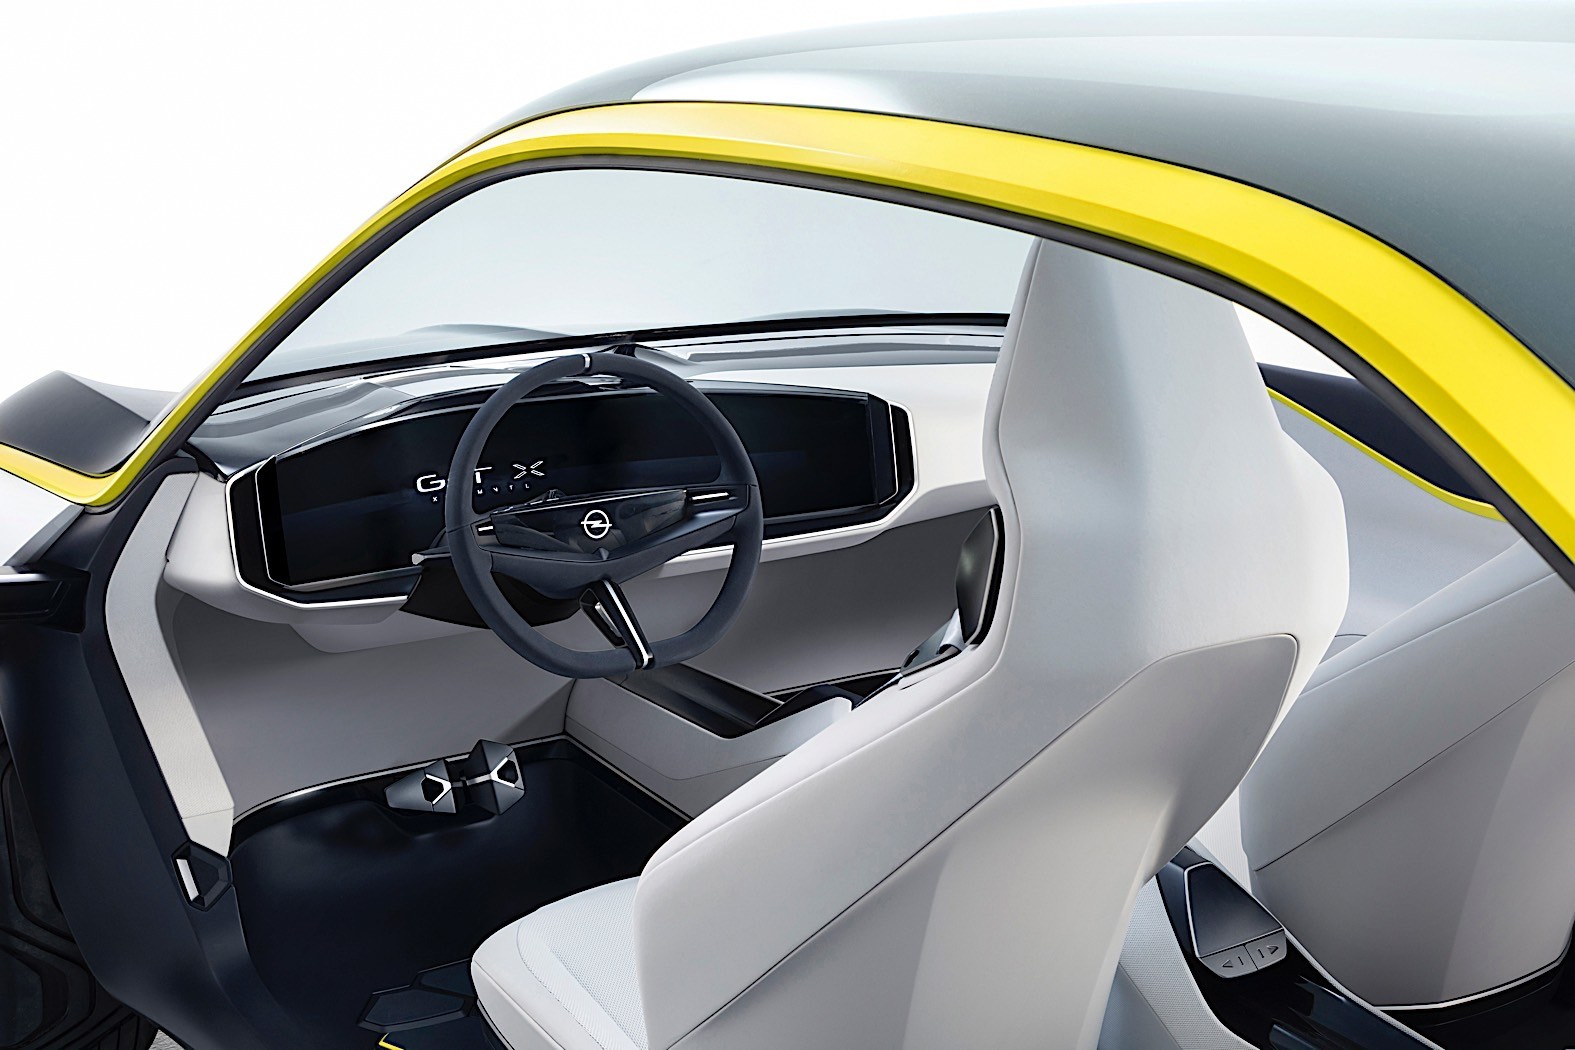 opel to use gt x experimental compass and vizor design on future electric cars autoevolution. Black Bedroom Furniture Sets. Home Design Ideas